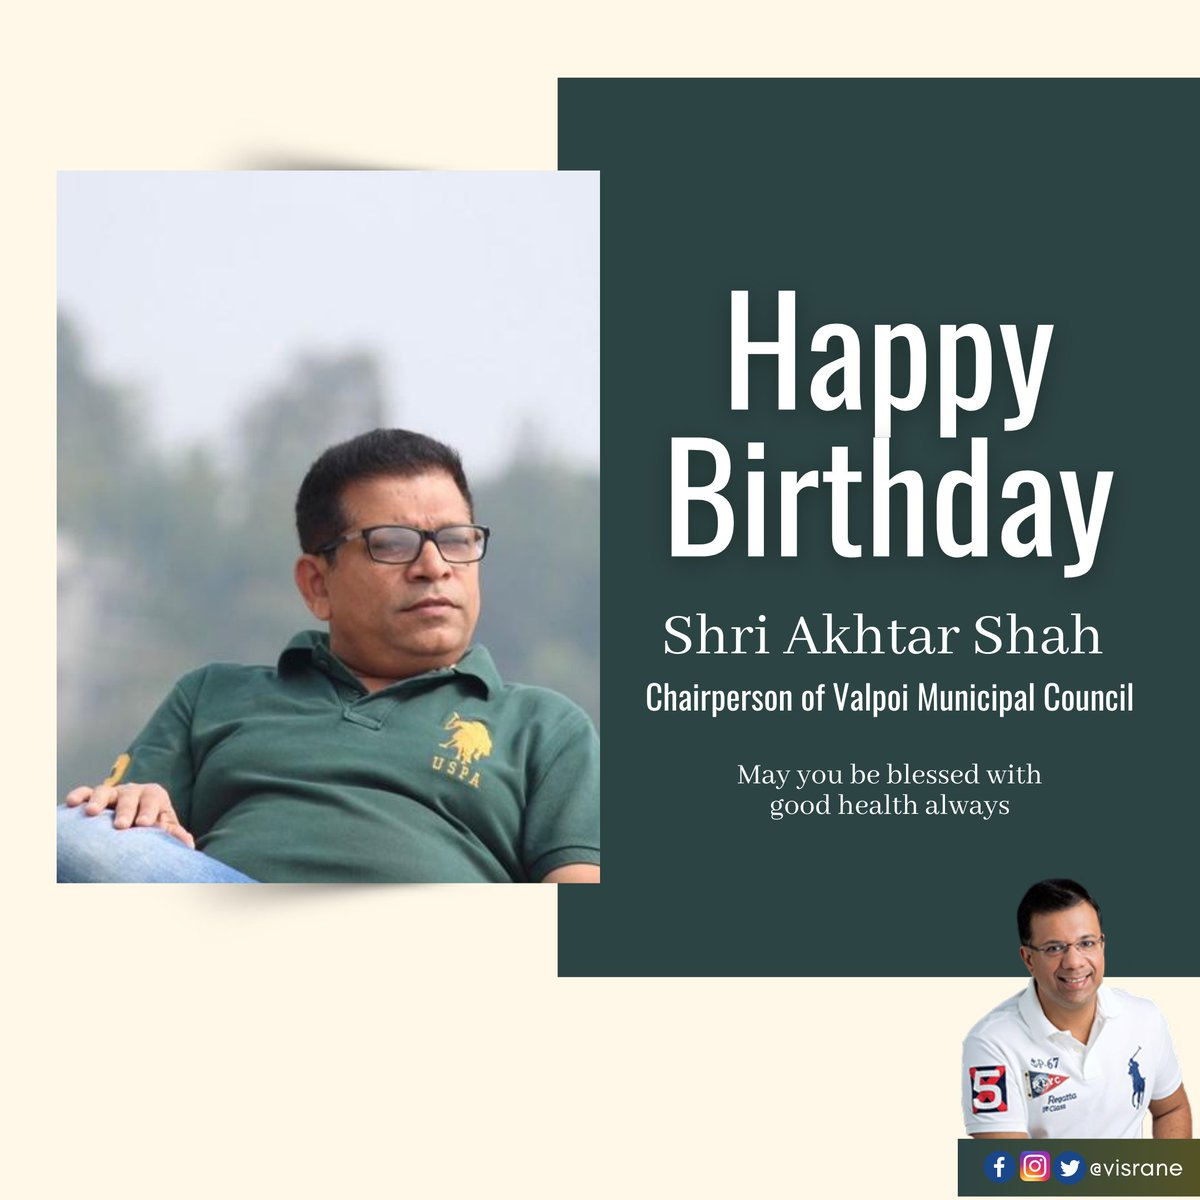 Wishing many many happy returns of the day to Shri Akhtar Ali Shah, Chairperson of Valpoi Municipal Council.  My best wishes for your good health and long life in service of the people of Valpoi. https://t.co/AHKrD92vwl